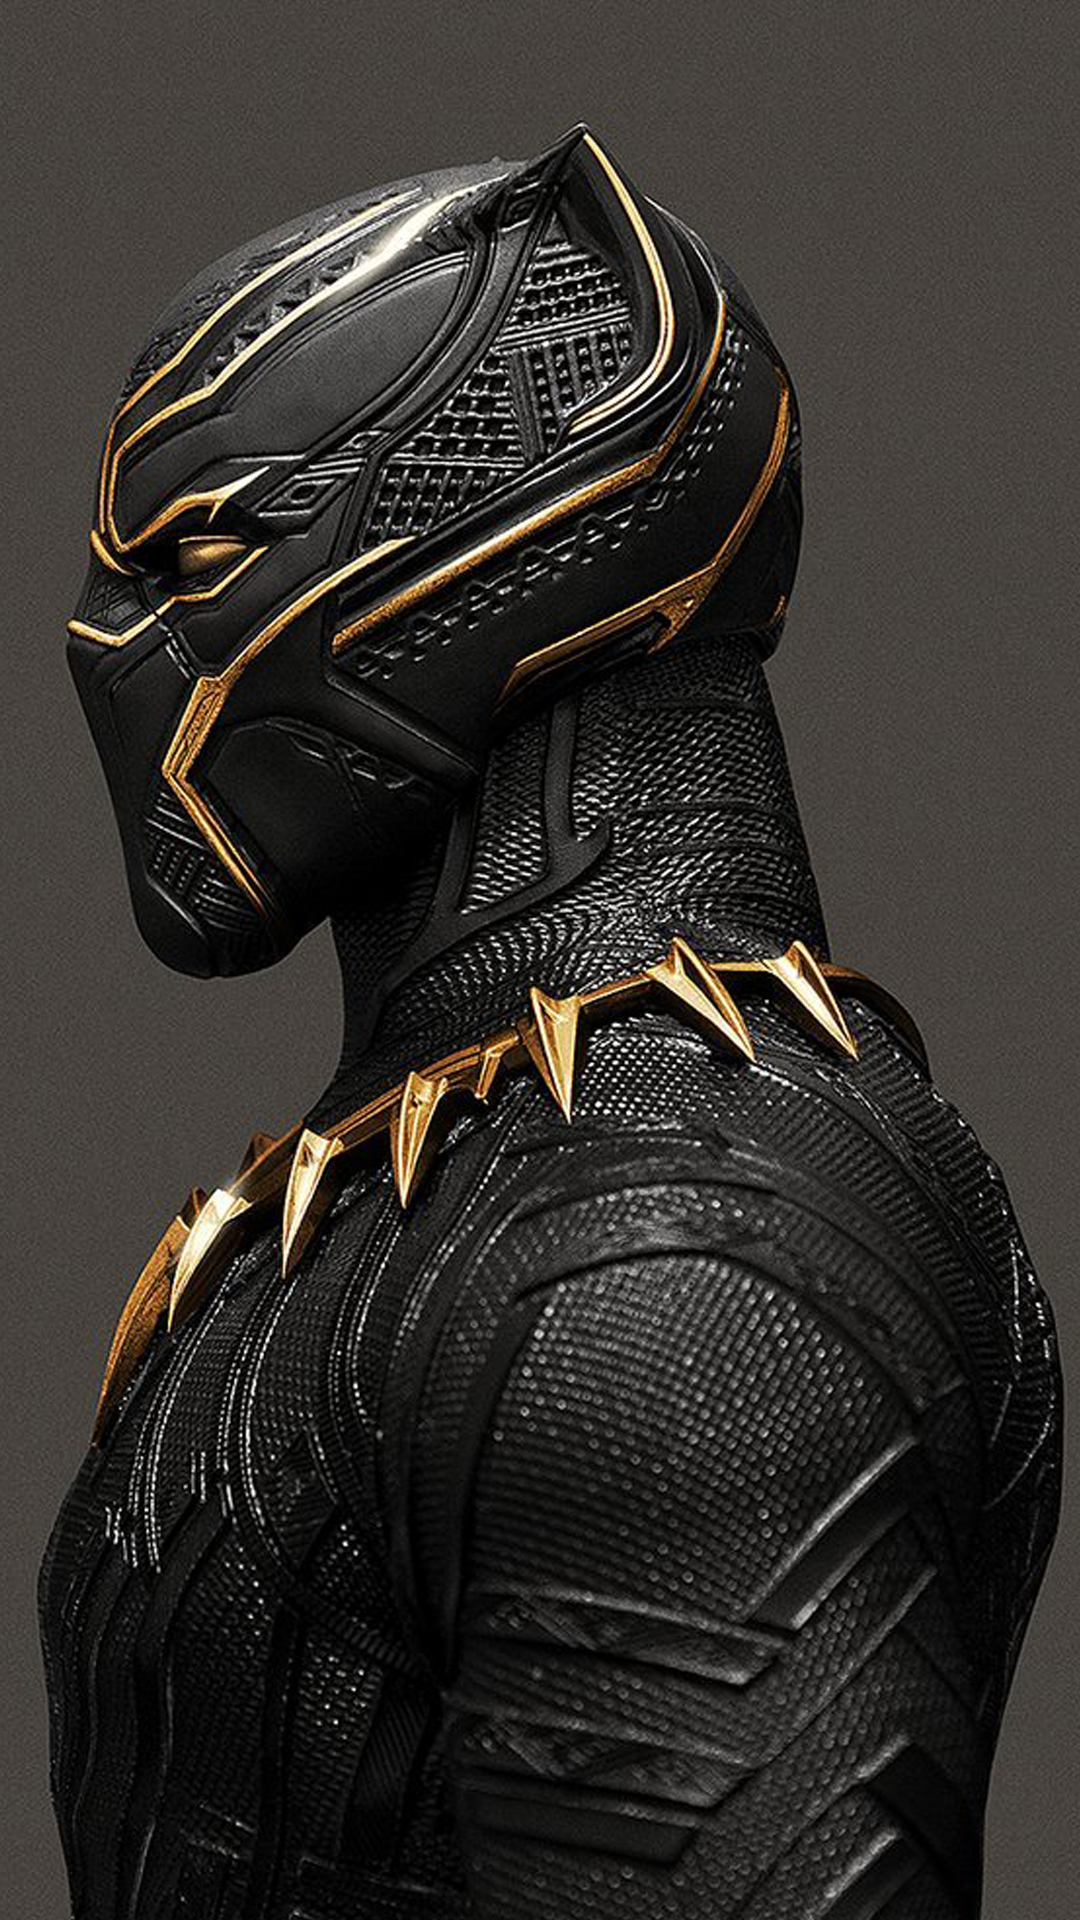 Badass Wallpapers For Android 35 0f 40 - Black Panther ...